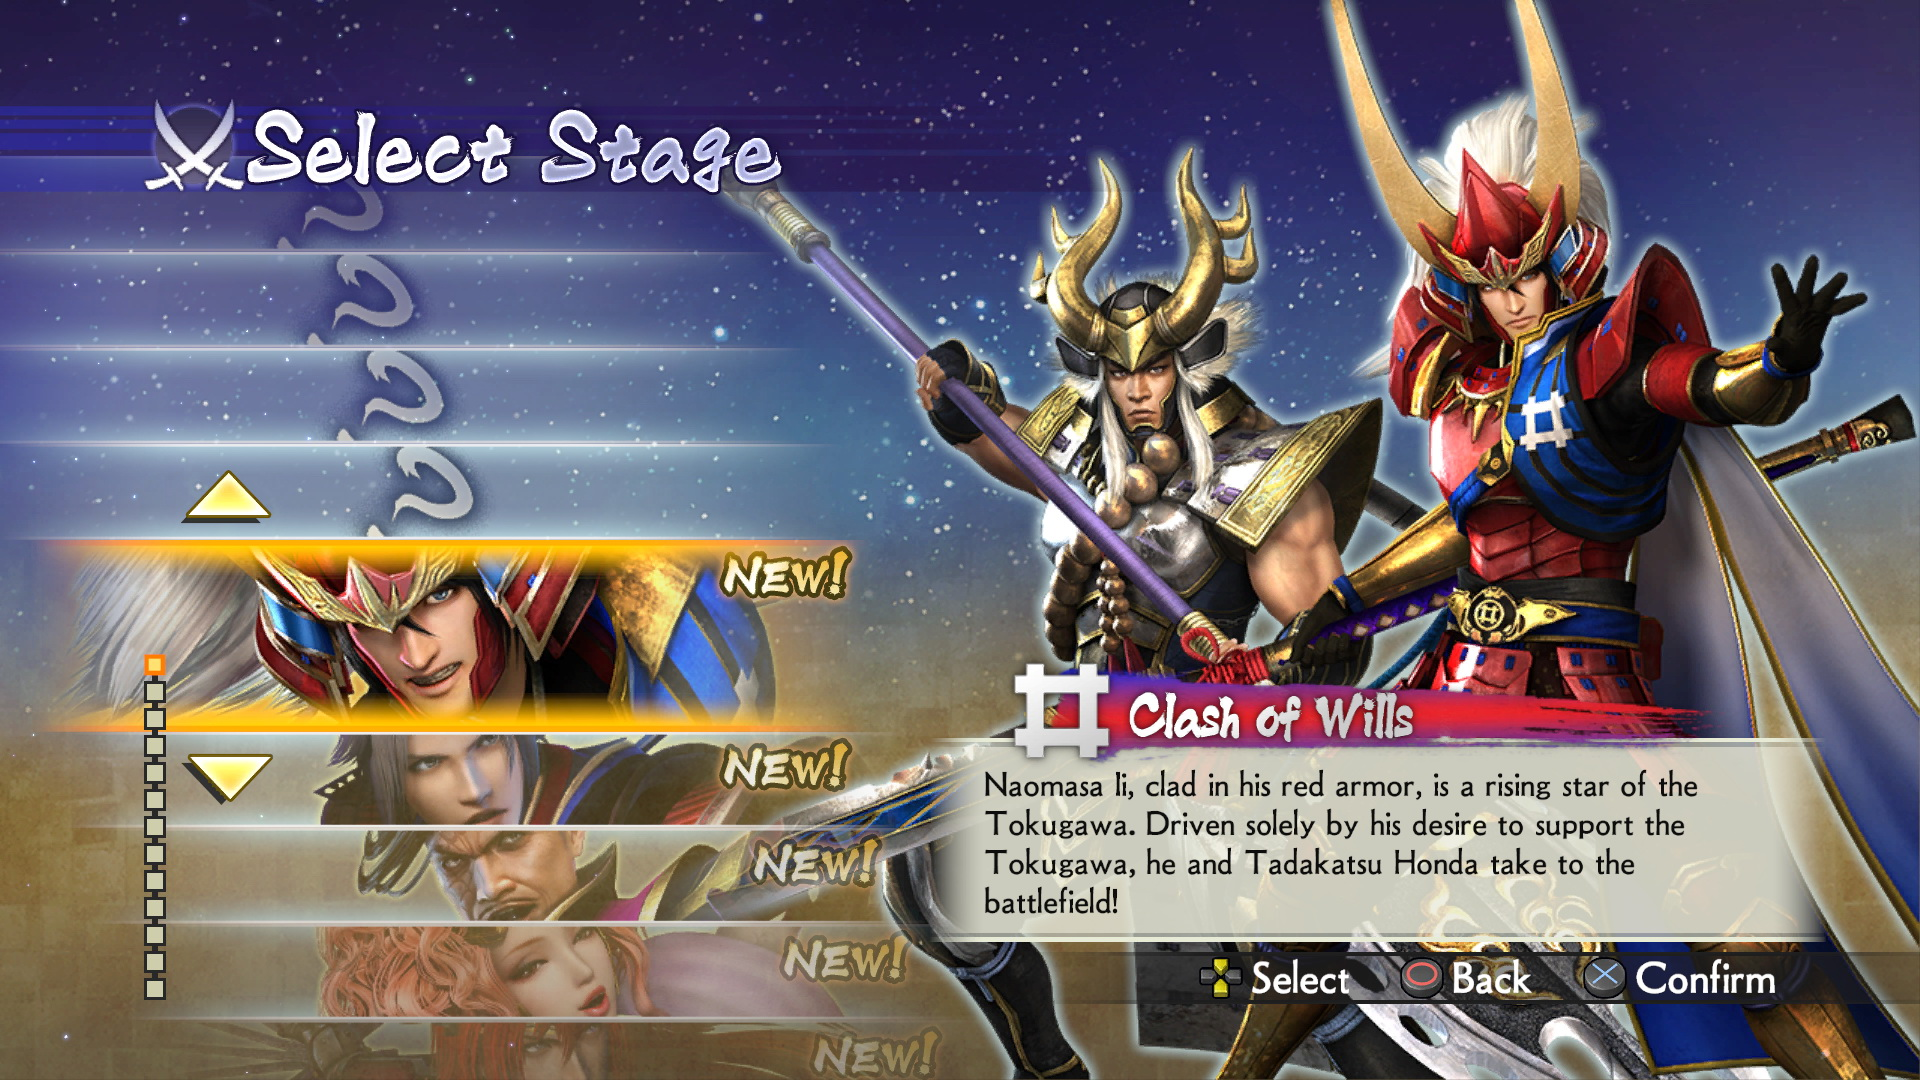 samurai warriors 4-2 story